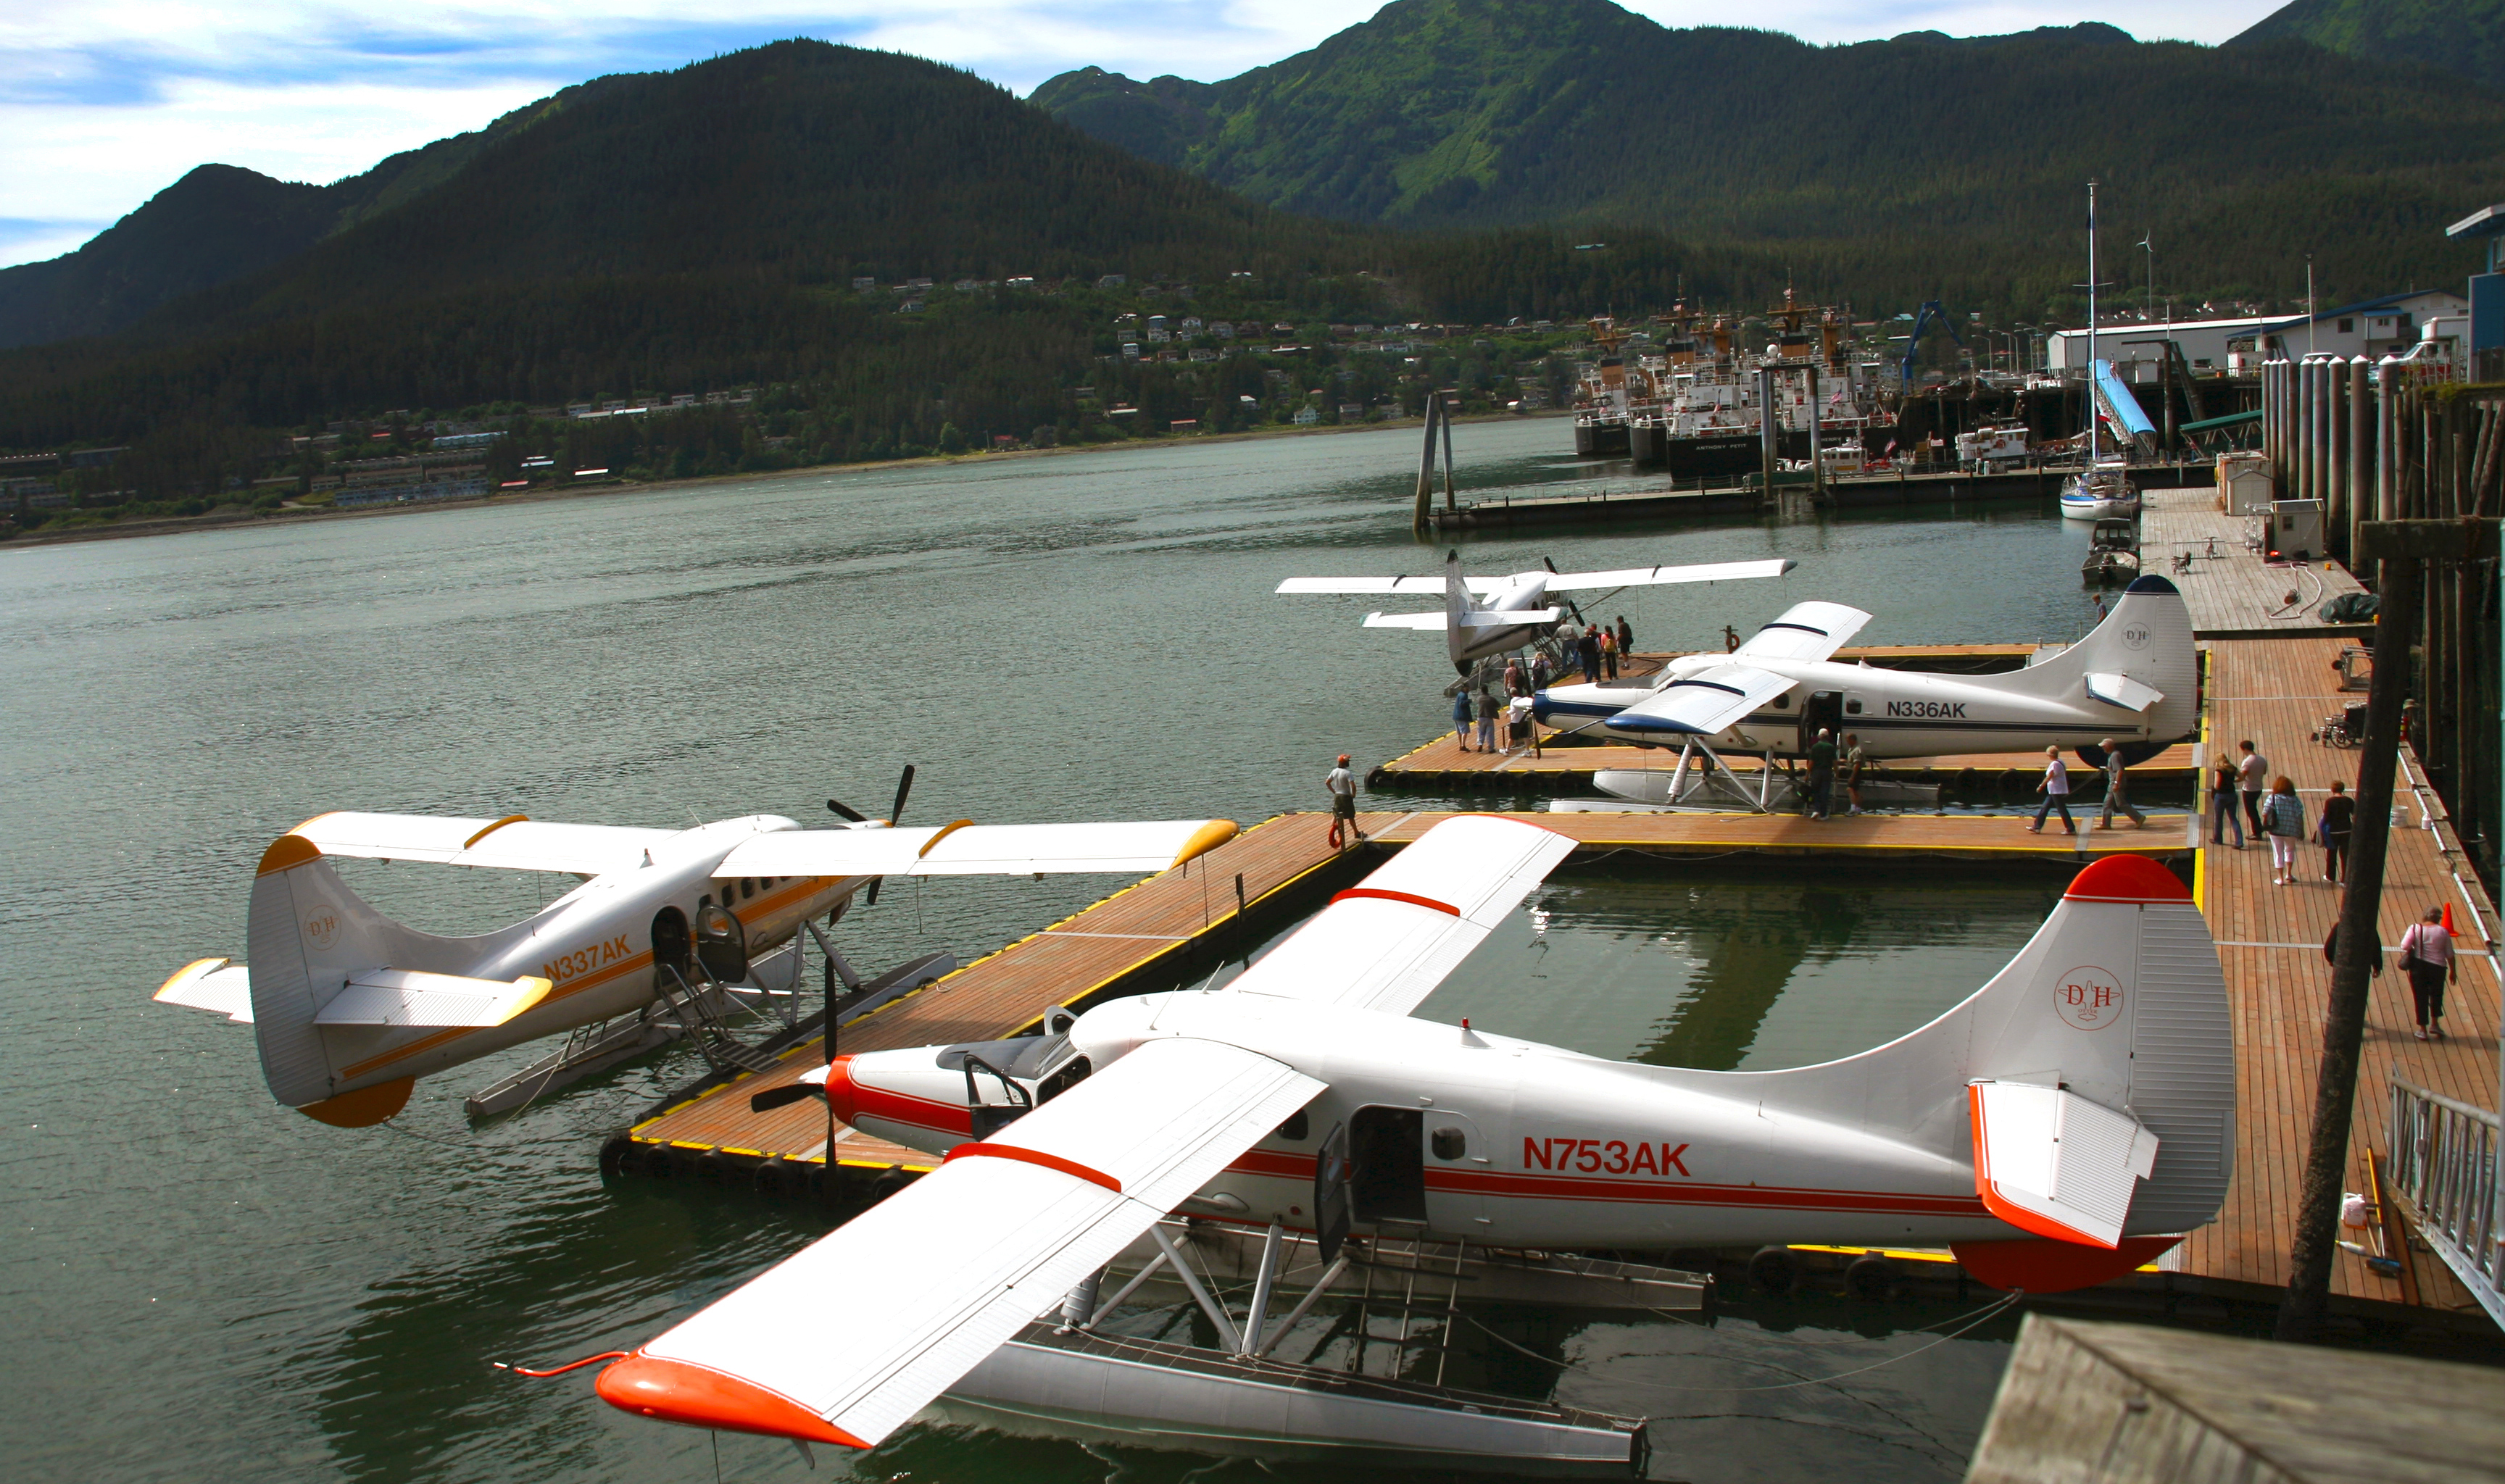 Planes along the wharf